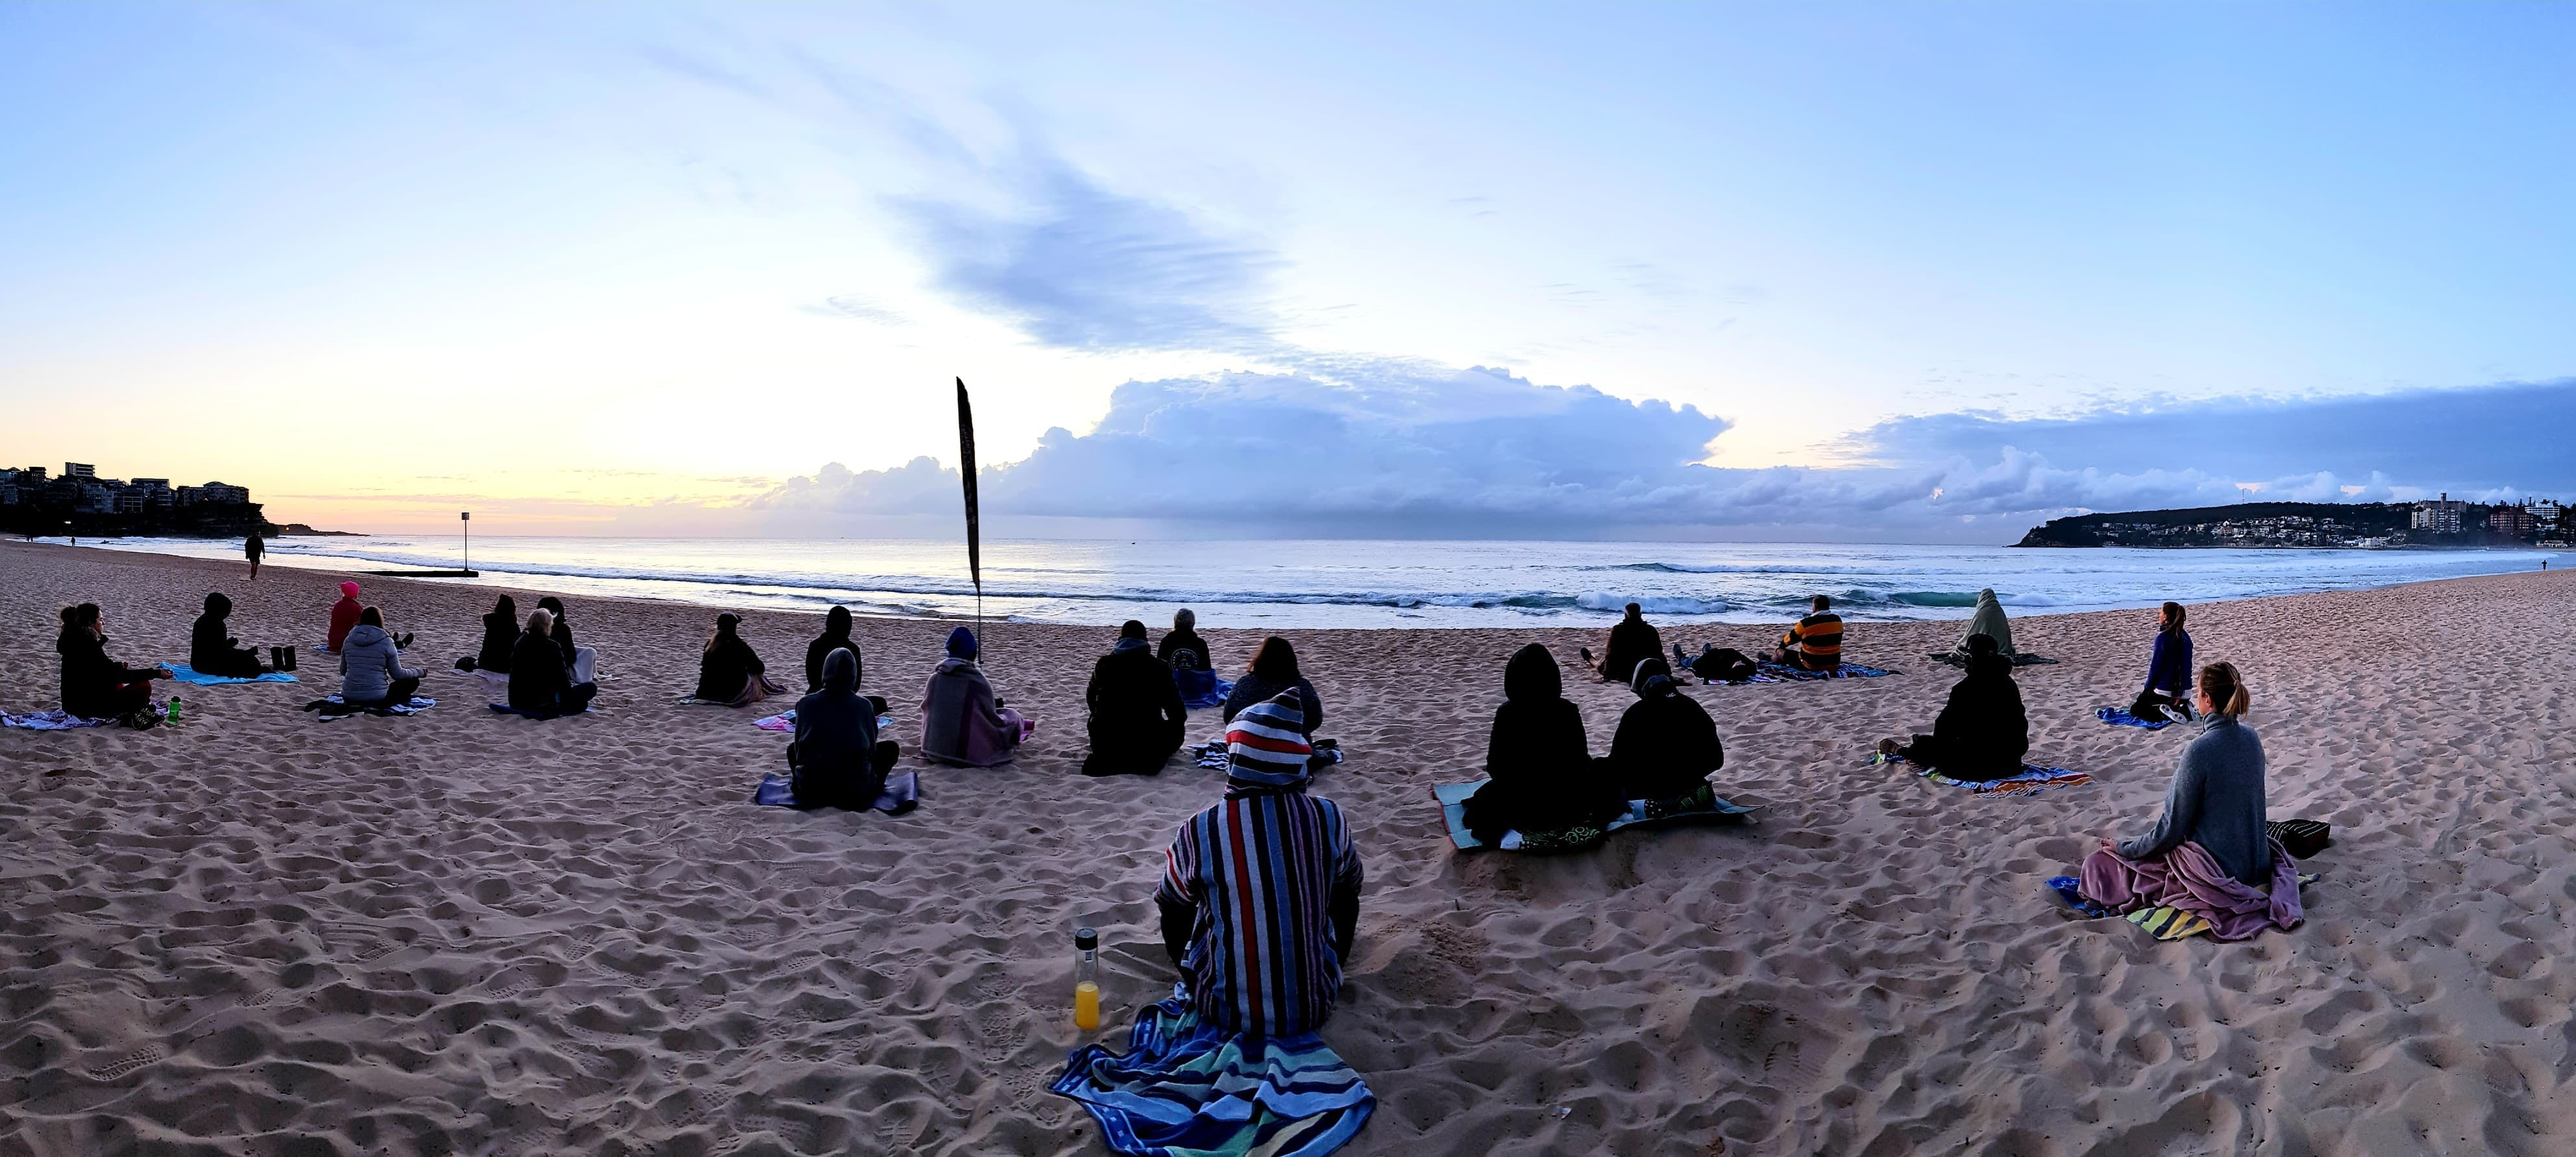 Making Meditation Mainstream Free Beach Meditation Sessions - Avalon Beach - Kempsey Accommodation